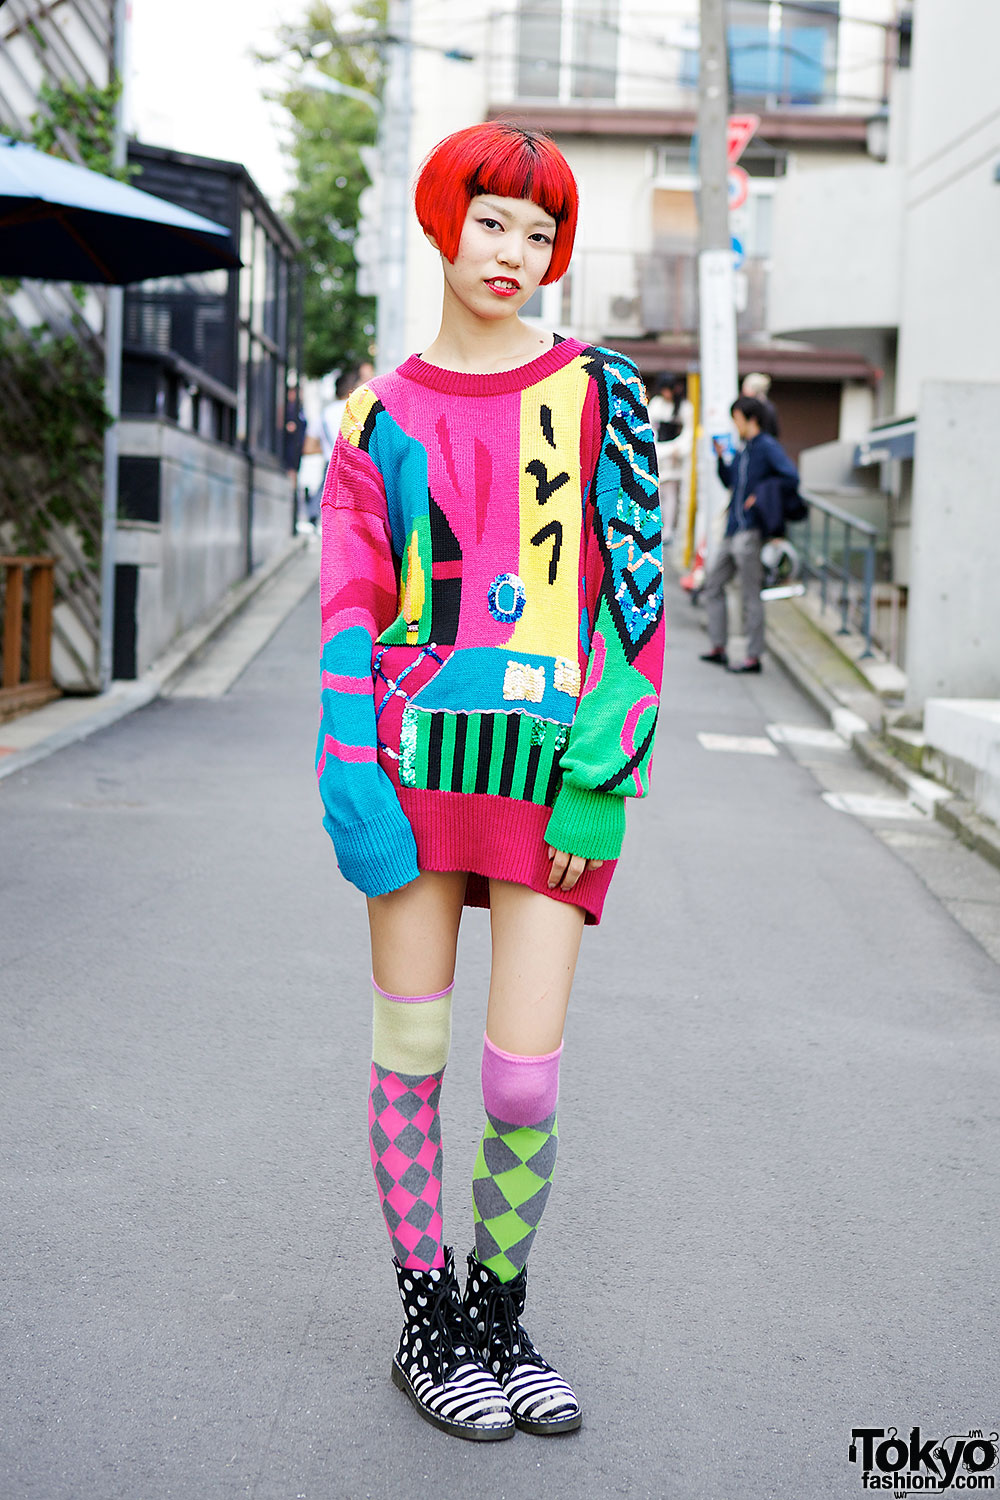 Circus Harajuku Staffer w/ Rainbow Hair, Oversized Sweater ...